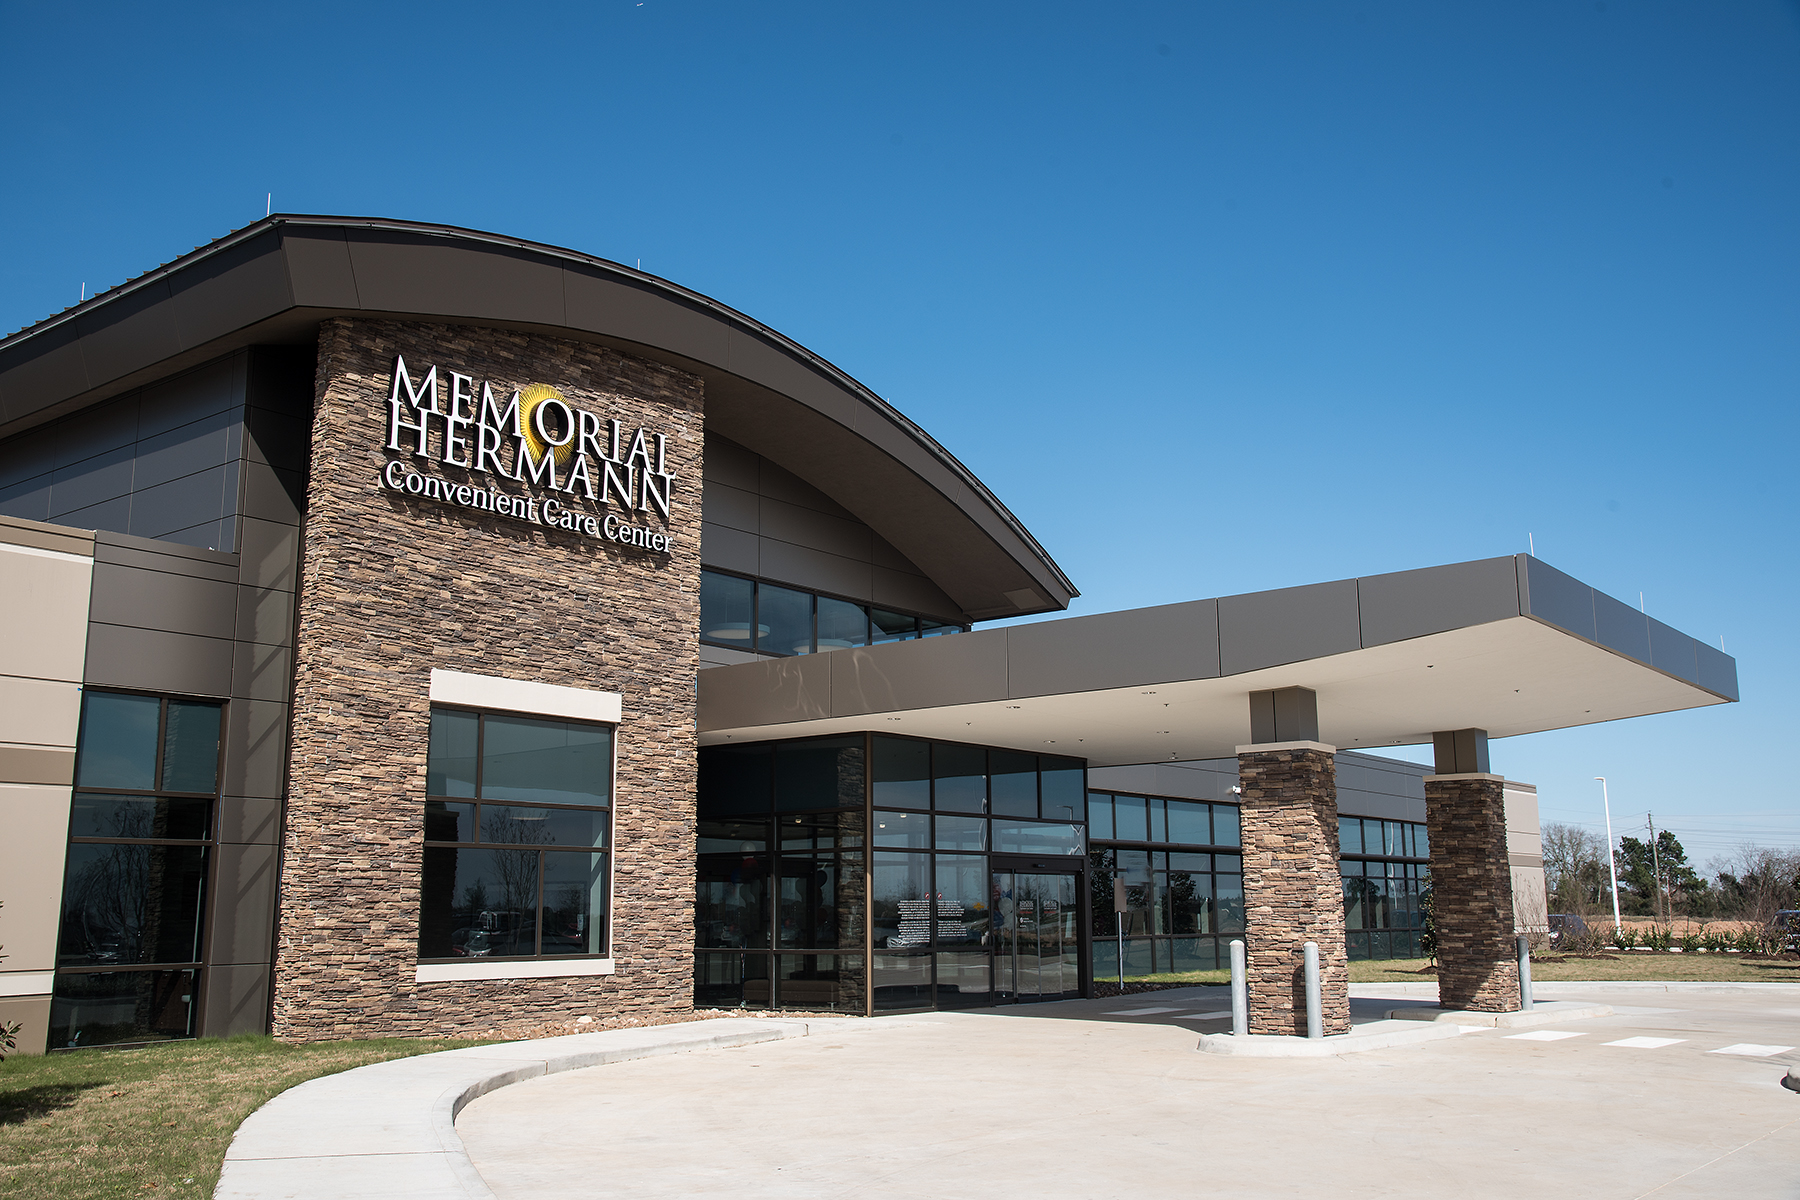 Memorial hermann opens health care facility in spring for Adam and eve salon katy tx